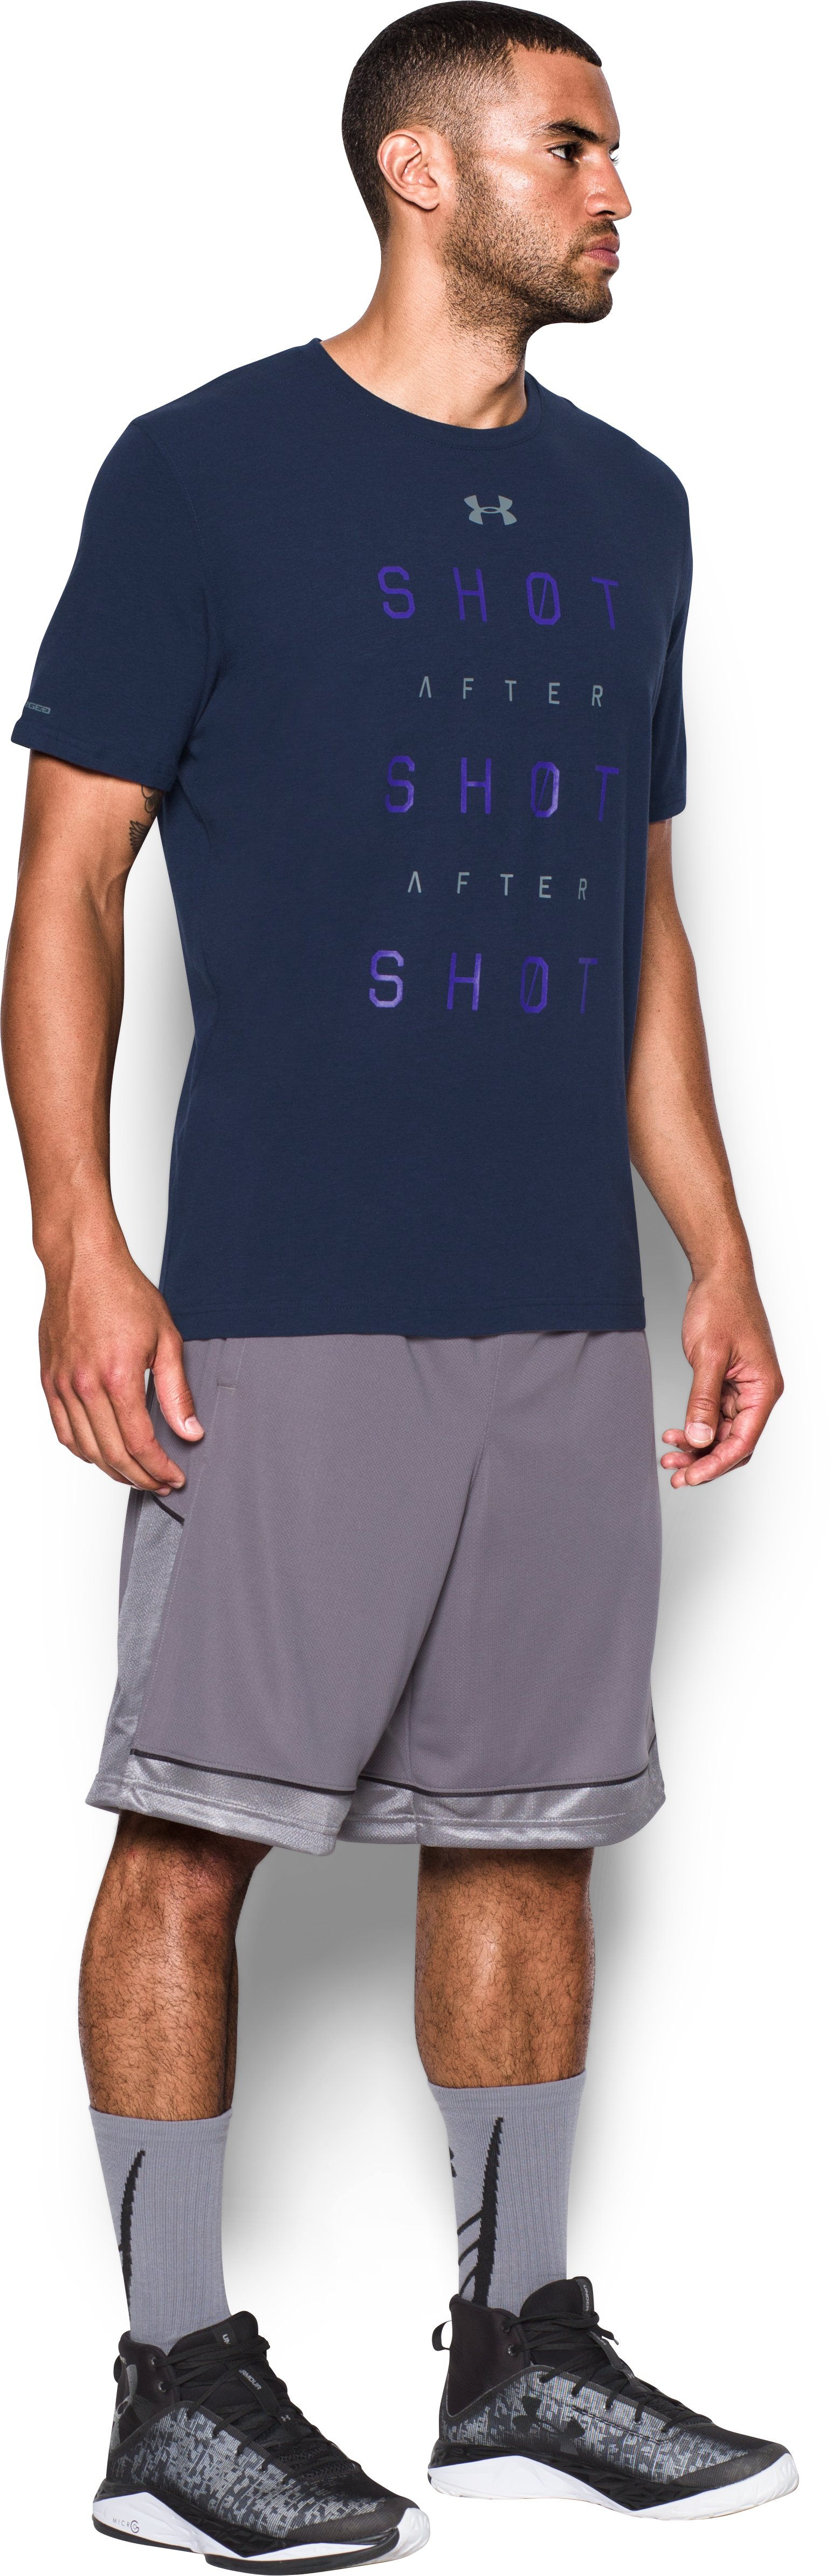 Men's UA Shot After Shot After Shot T-Shirt, Midnight Navy